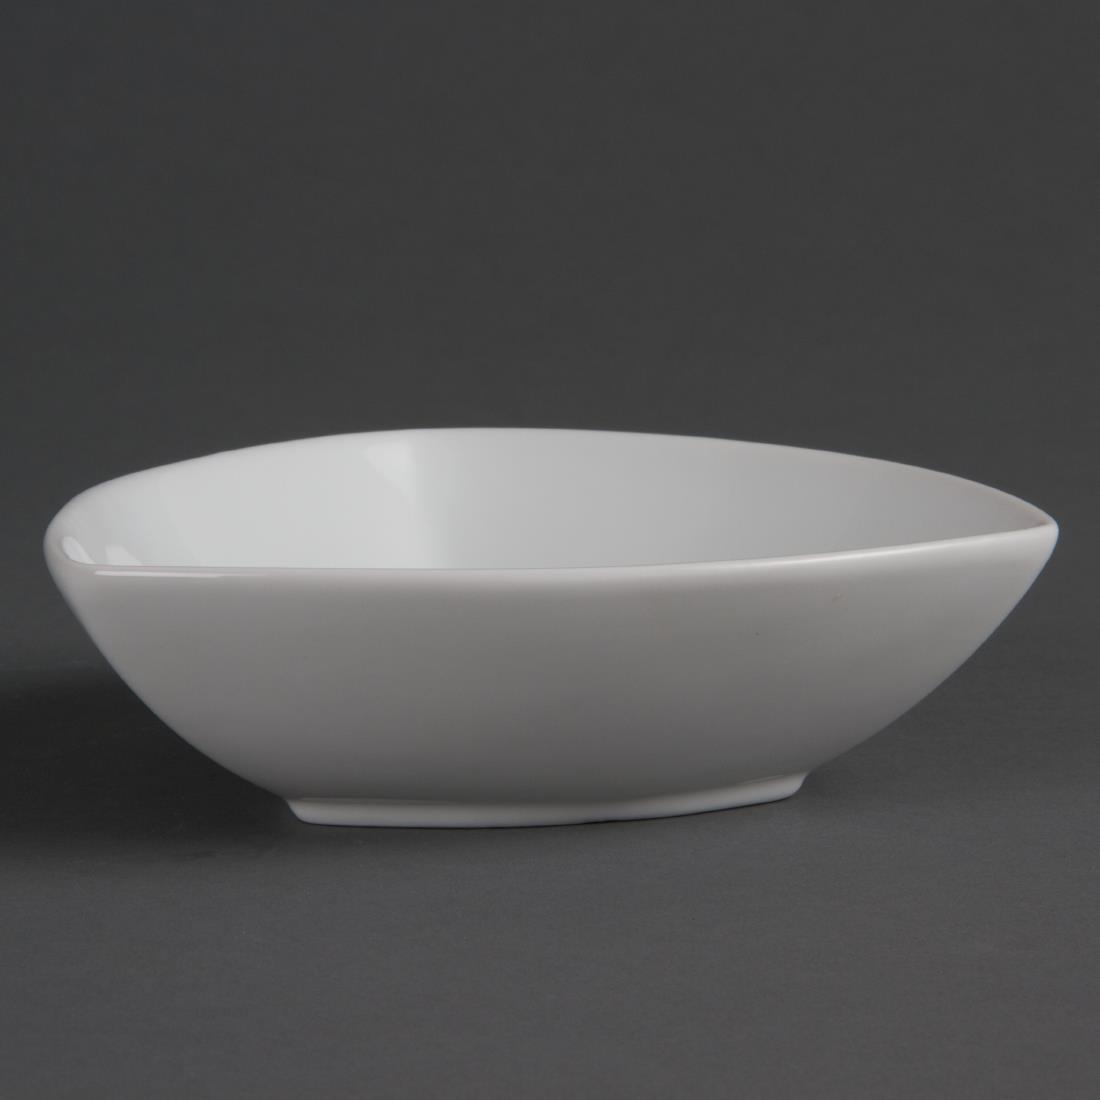 Olympia Whiteware Rounded Triangular Bowls 155mm